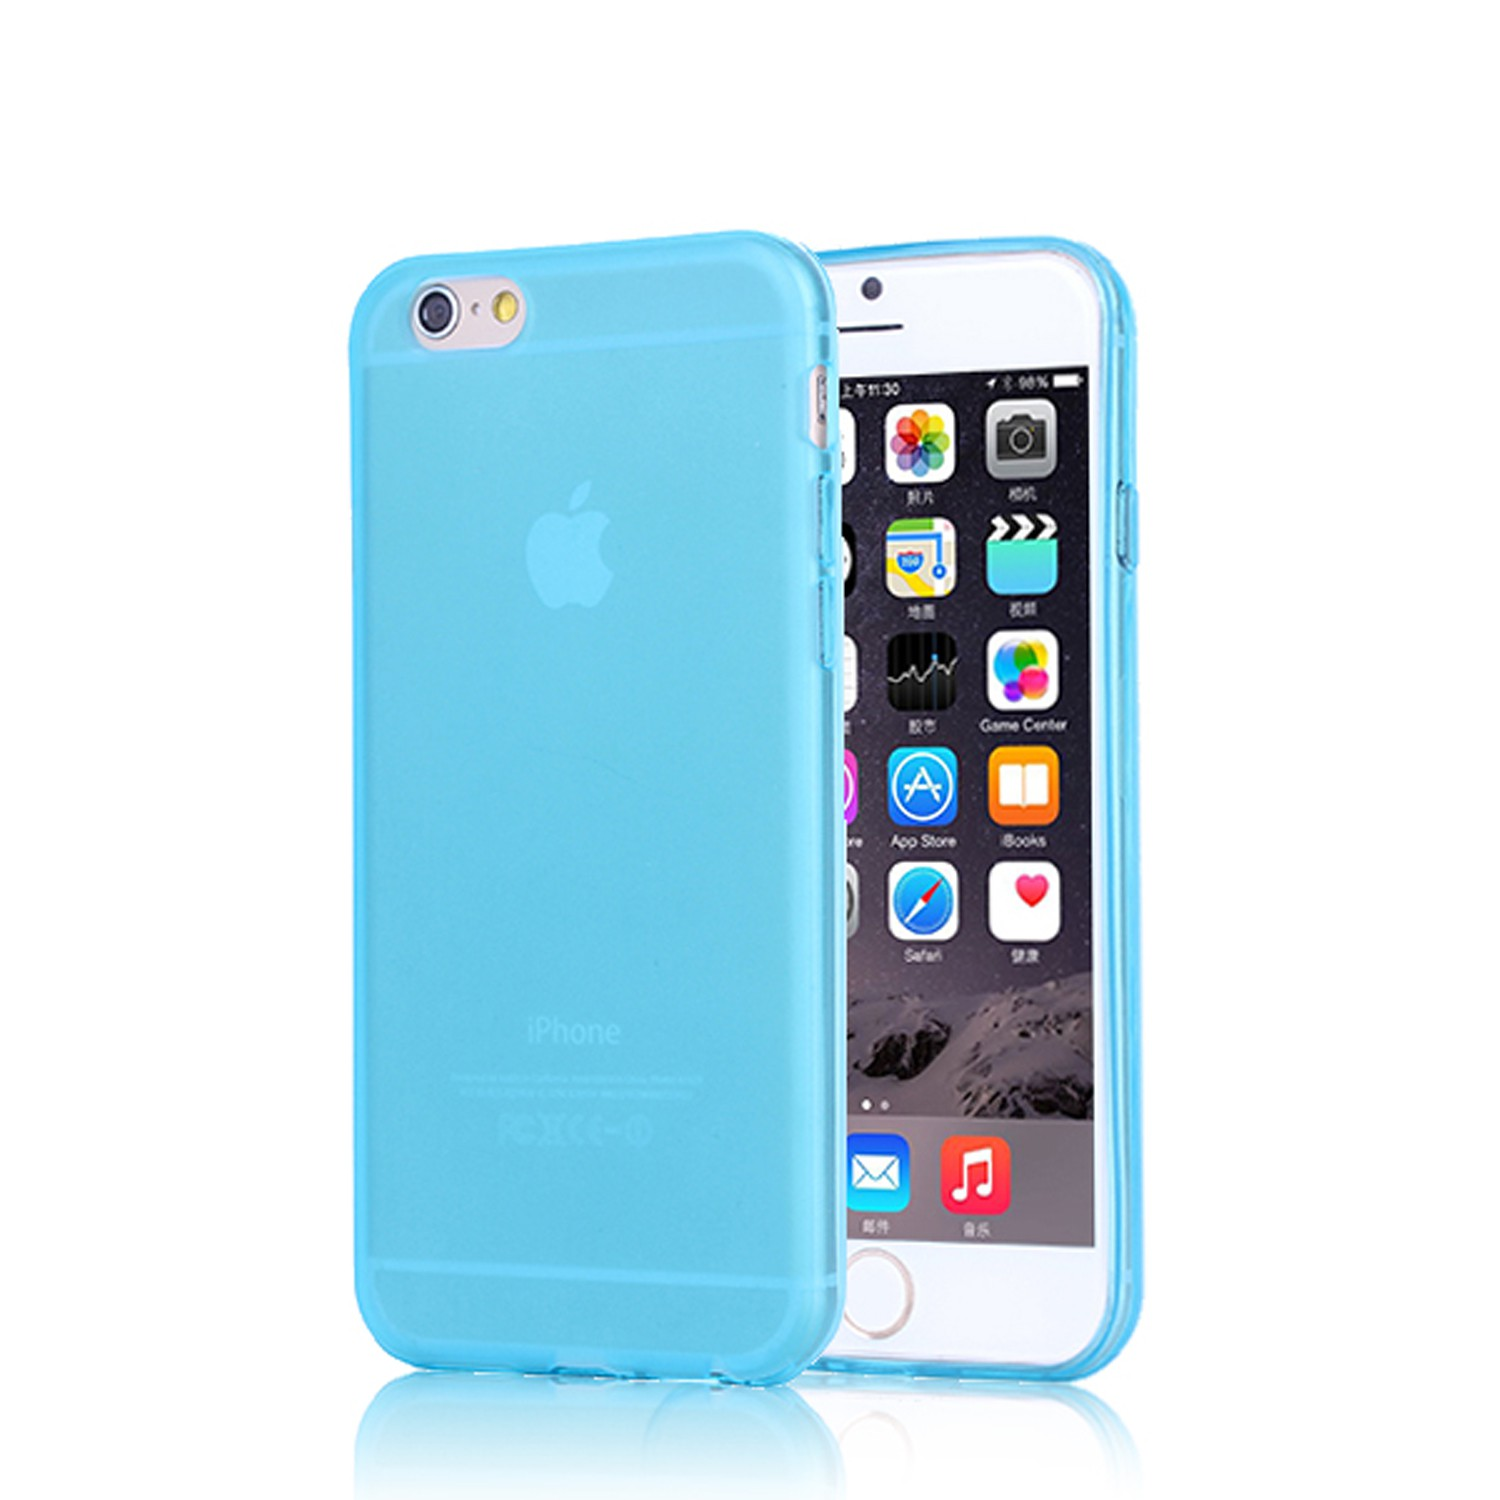 Yemota Pro Softcase iPhone 6s - Blau